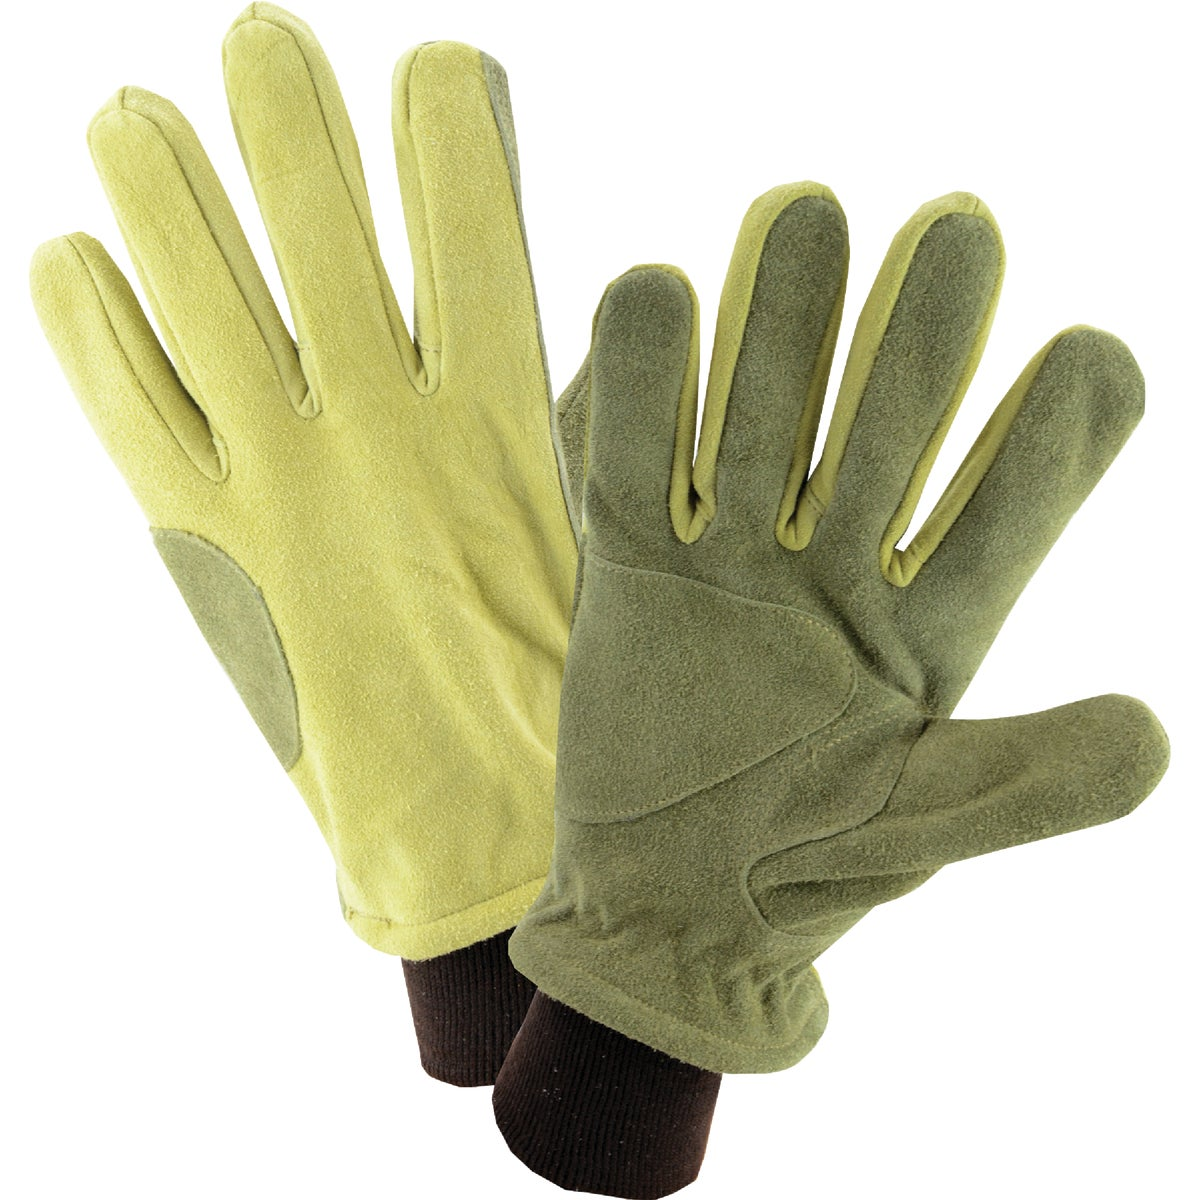 XL 2-TN LTHR LND GLOVE - 1195XL by Wells Lamont